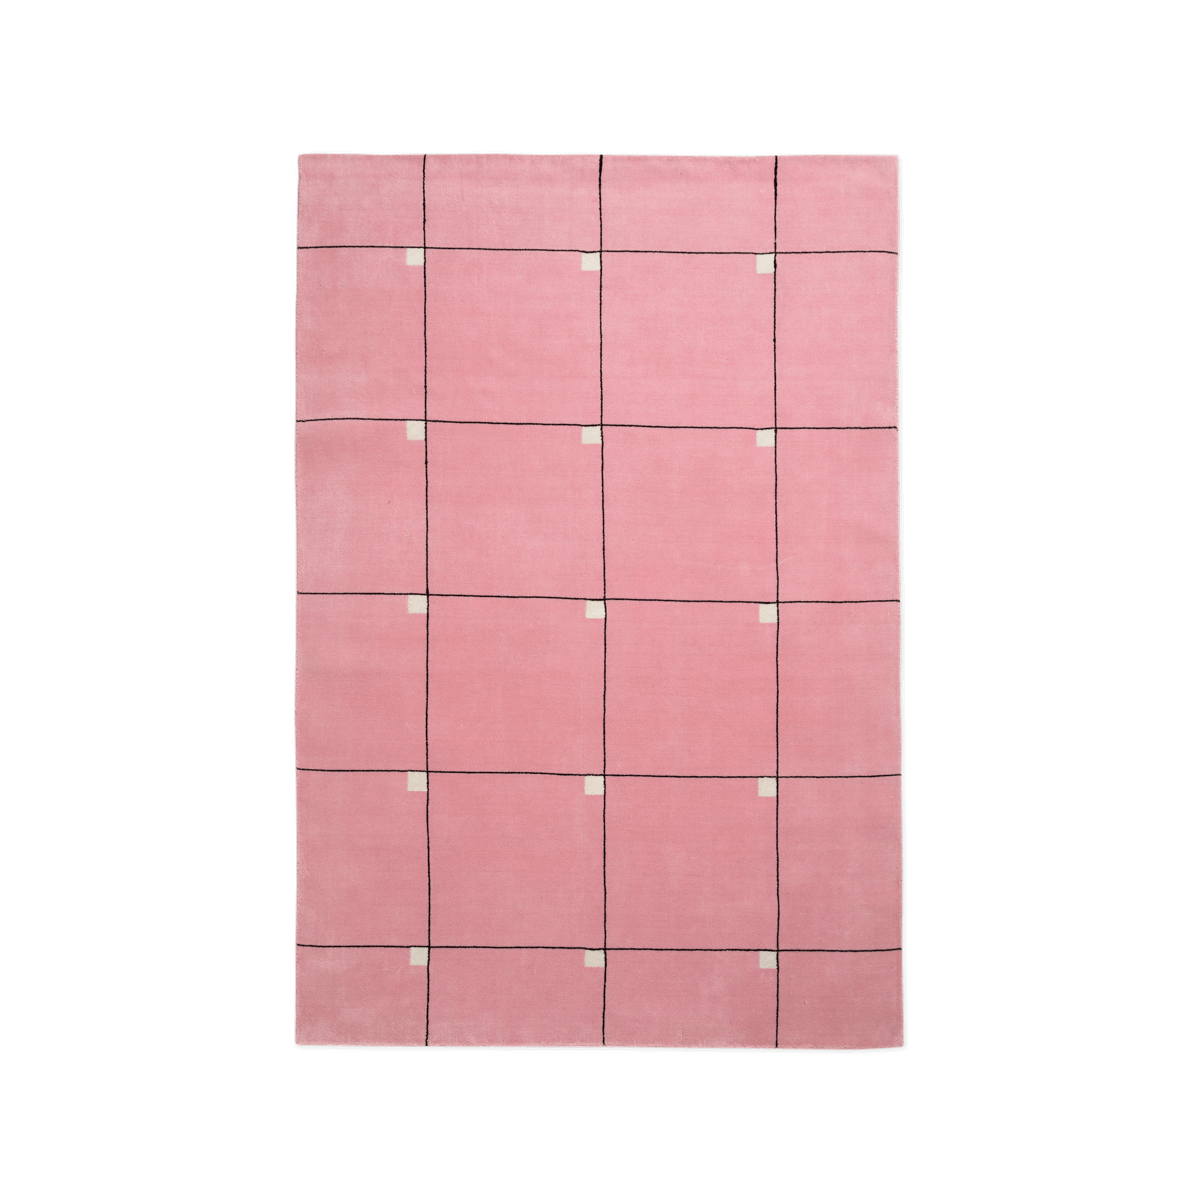 Product image of the plush rug Modern in the color Pink. The rug has a square pattern with small white squares in the upper right corners of the larger squares.